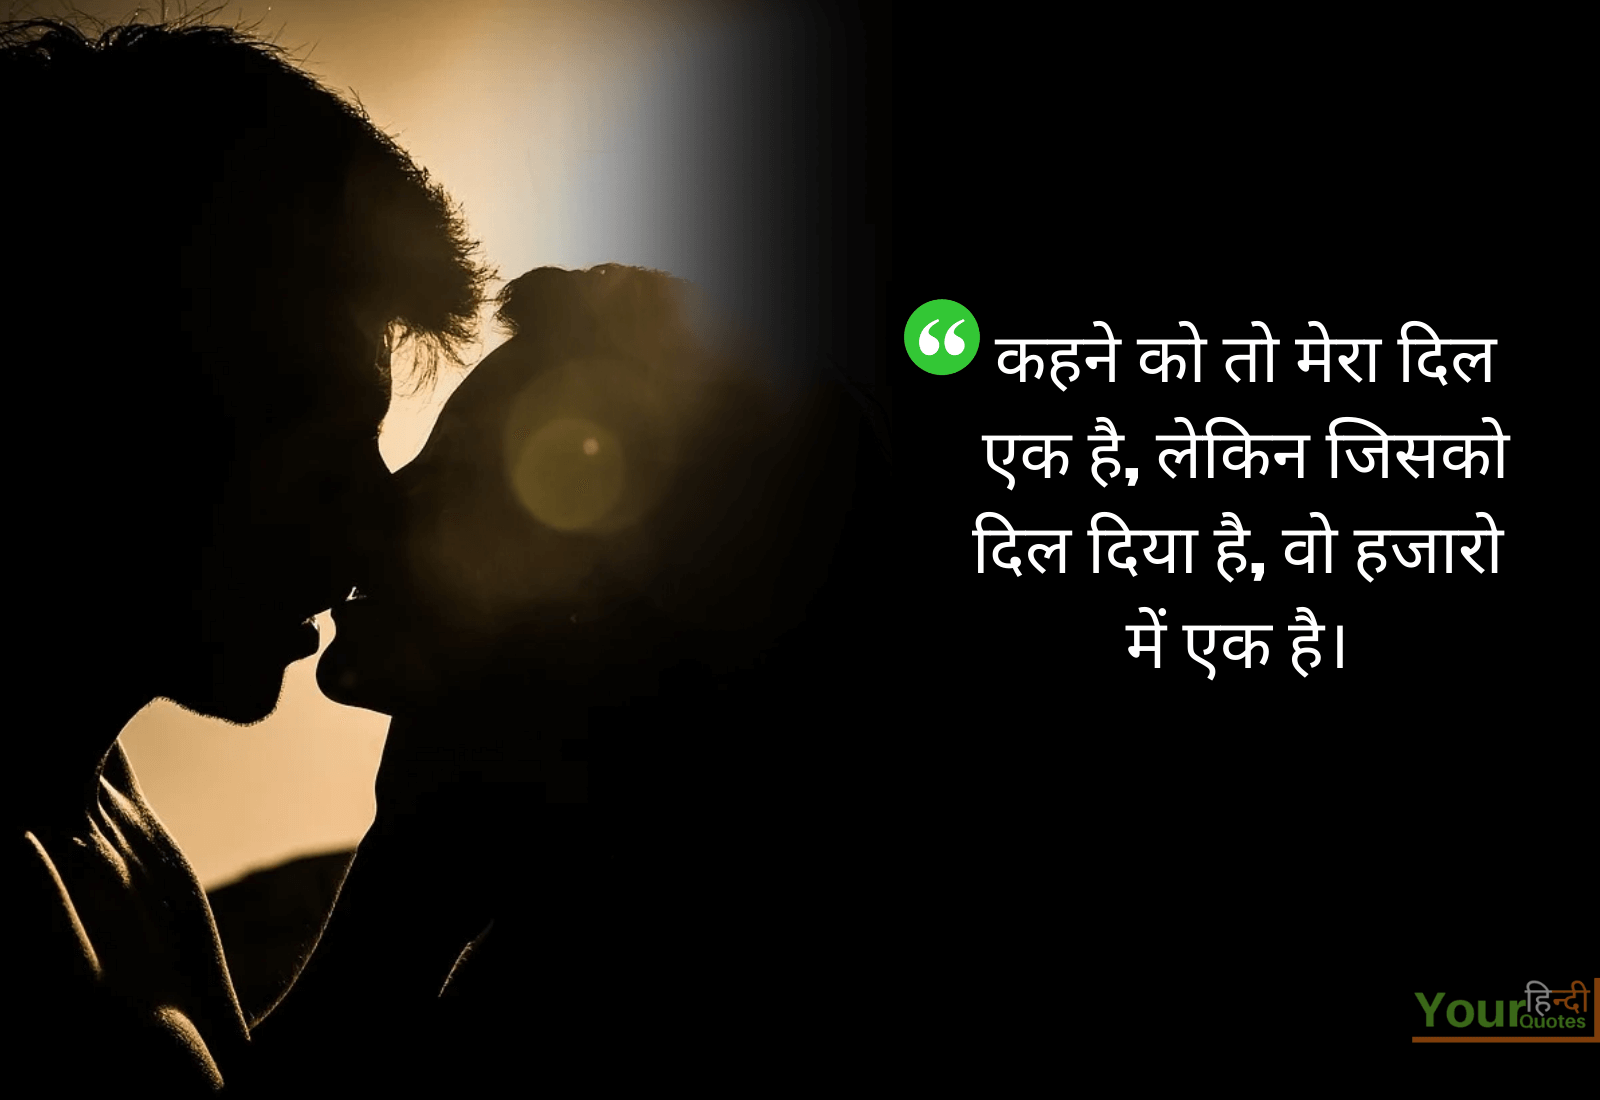 Romantic Shayari in Hindi Image